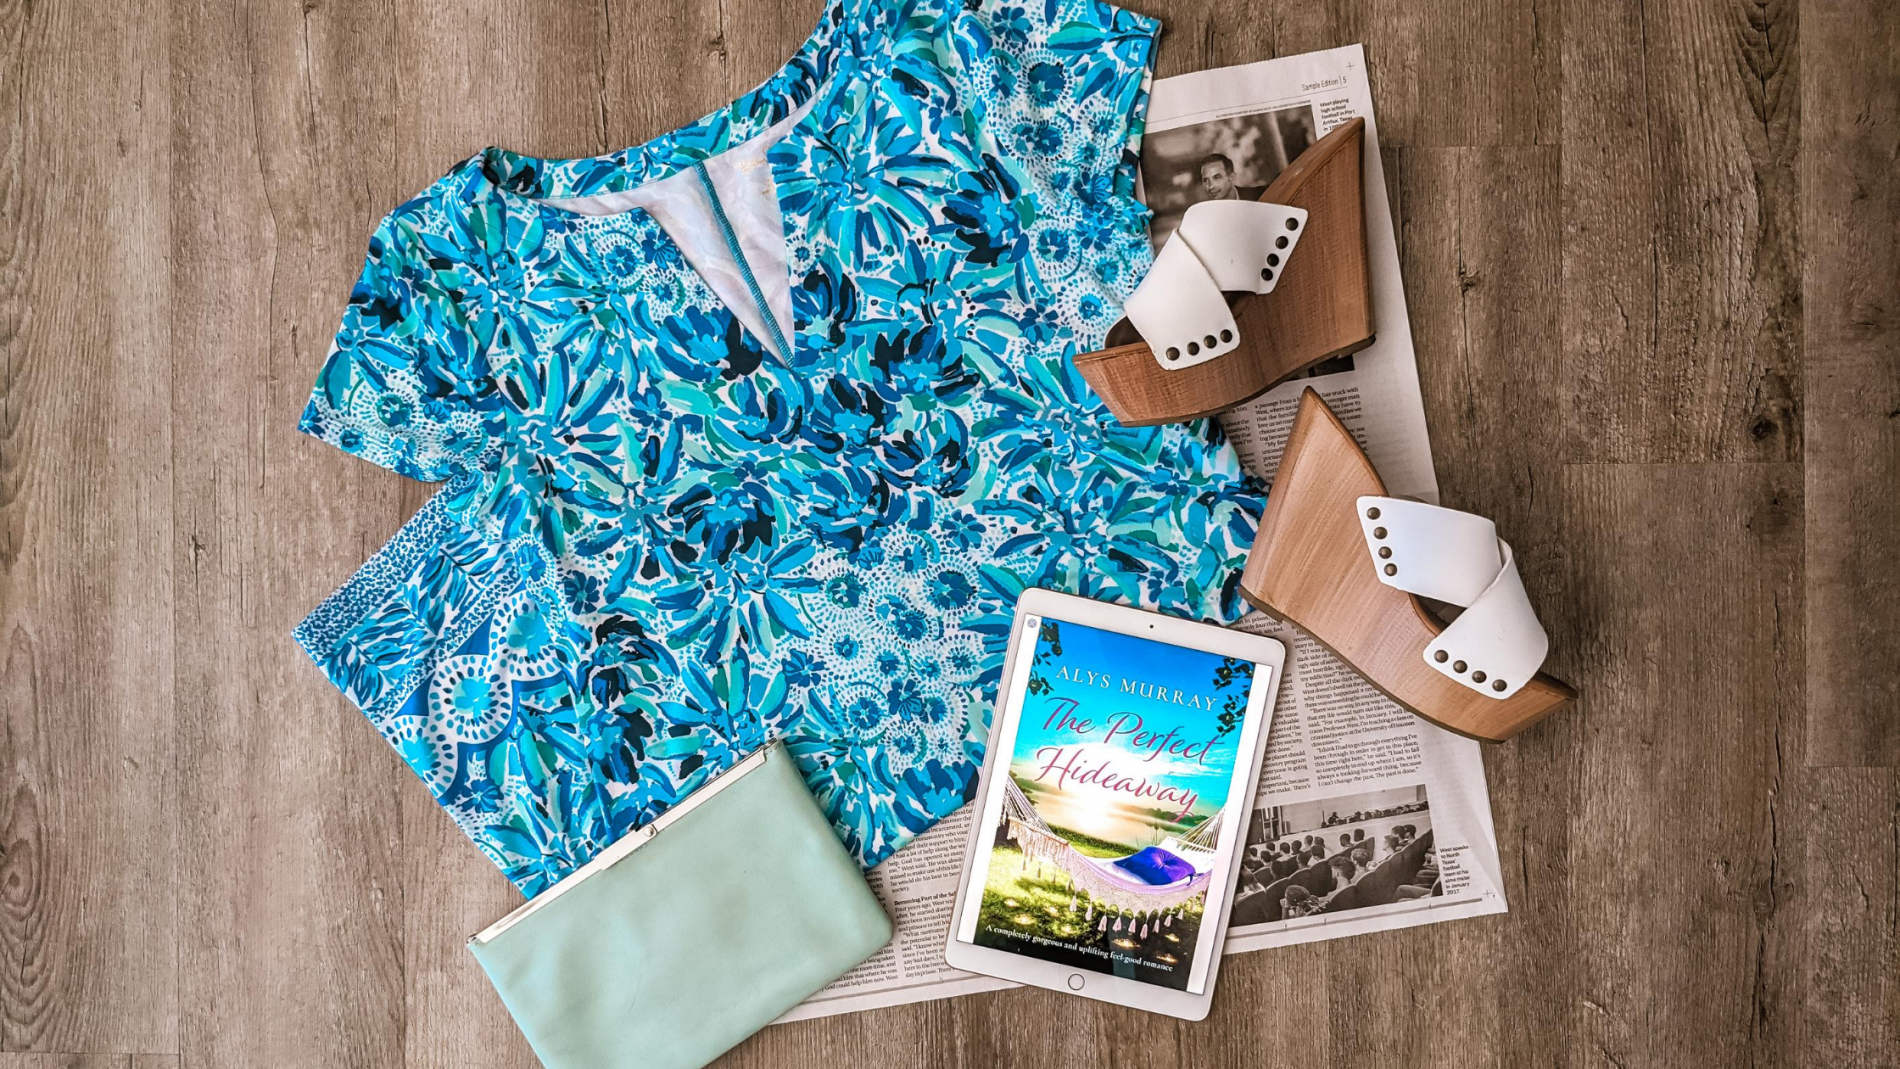 The Perfect Hideaway book pictured with a Lilly Pulitzer dress and heels